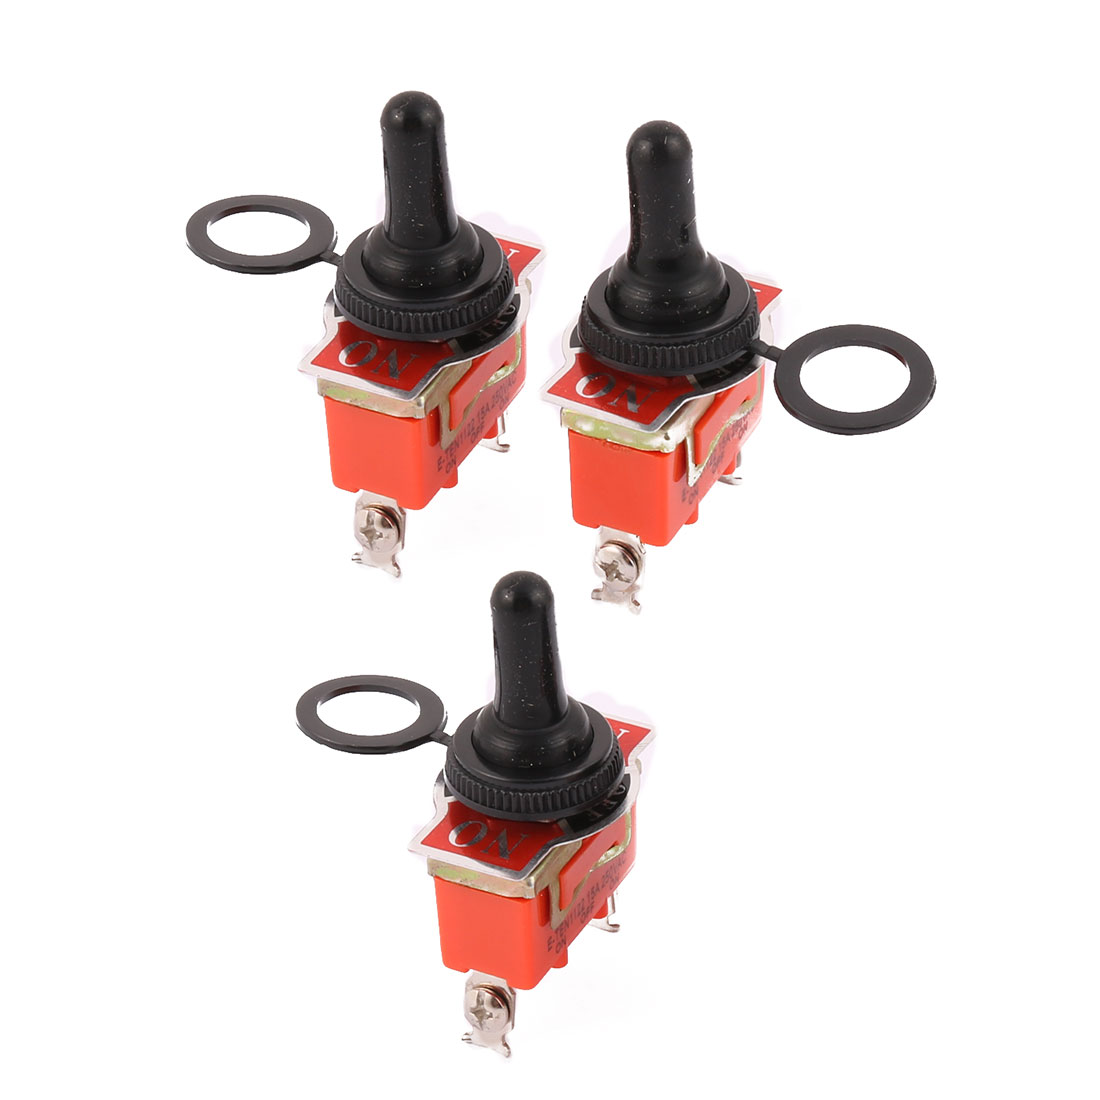 3 Pcs AC 250V SPDT ON/OFF/ON 3P Launching 3 Terminal Switch Orange w Cover